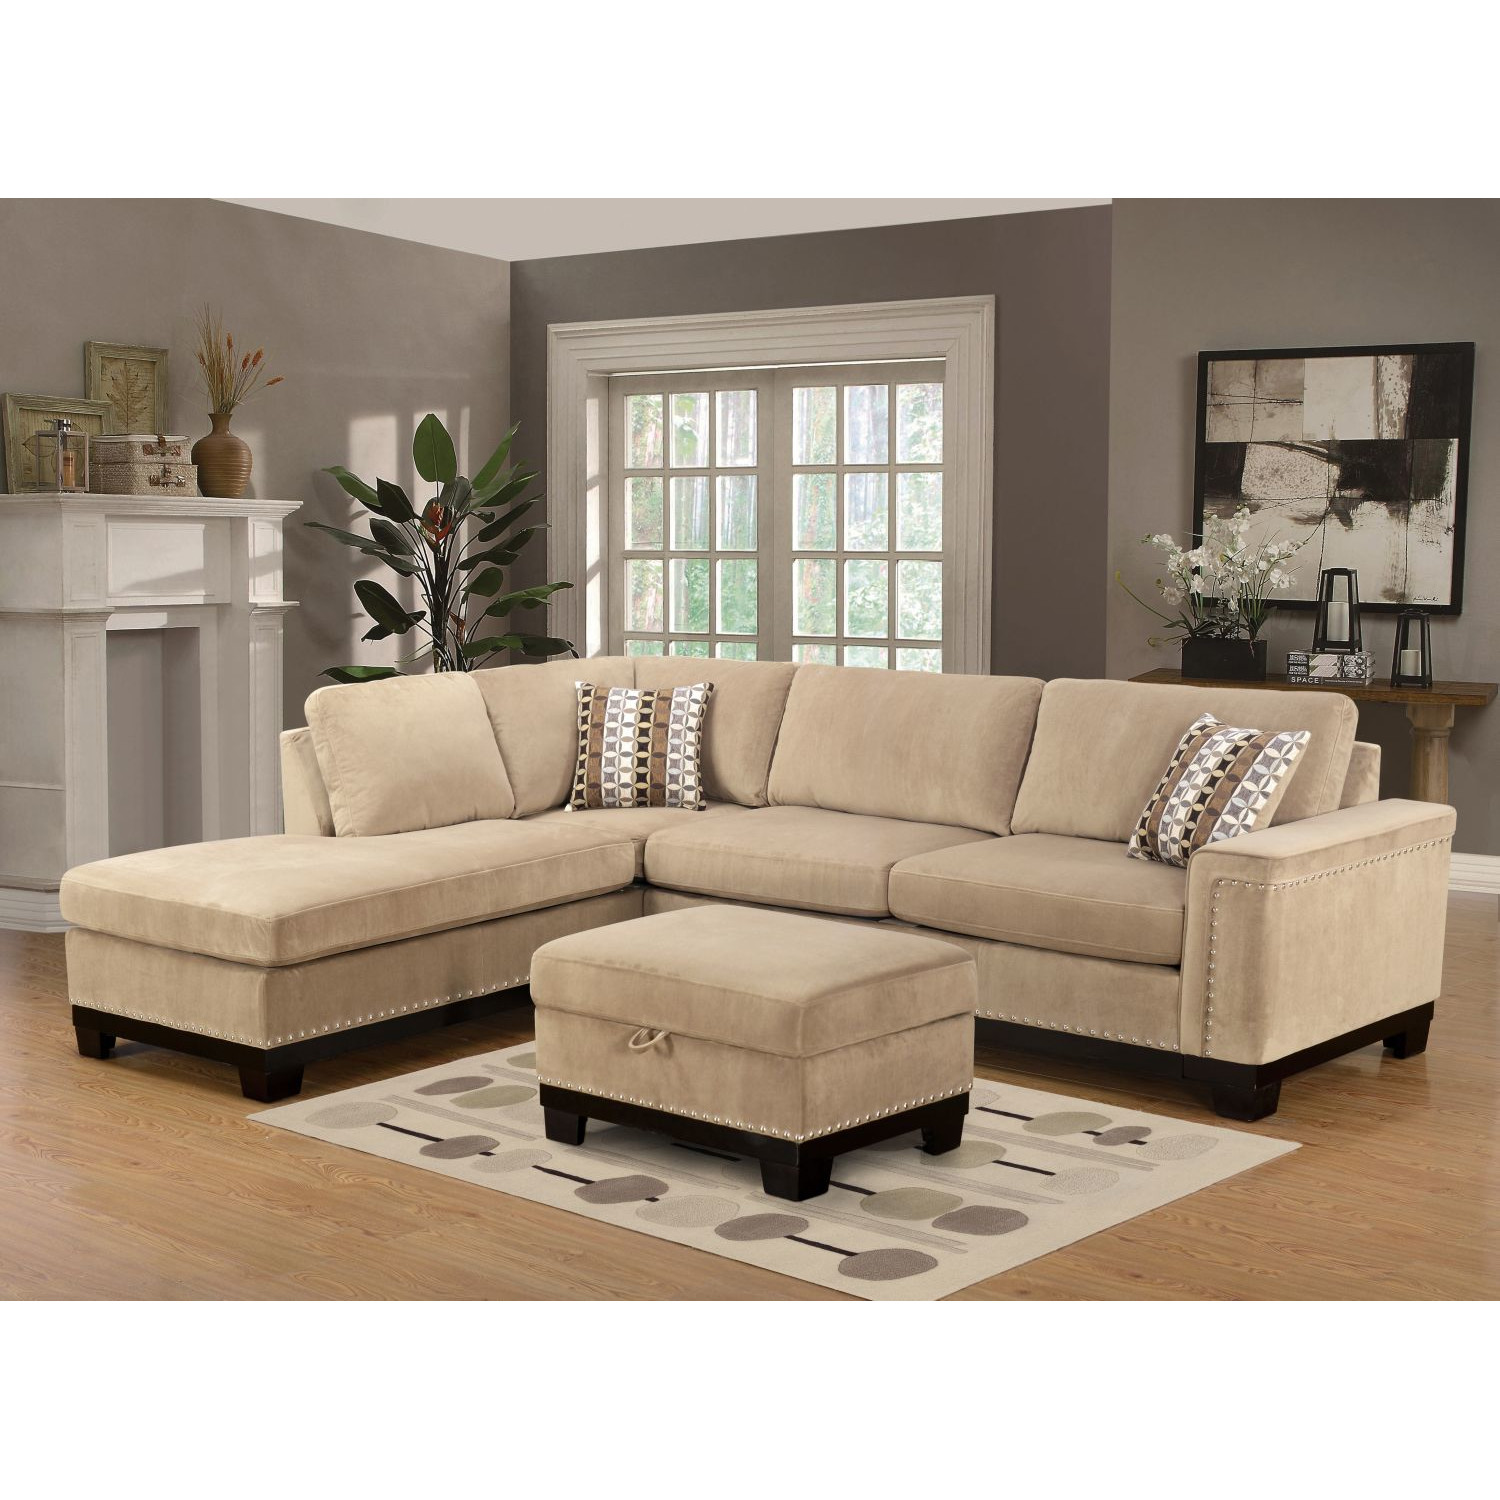 Furniture & Rug Cheap Sectional Couches